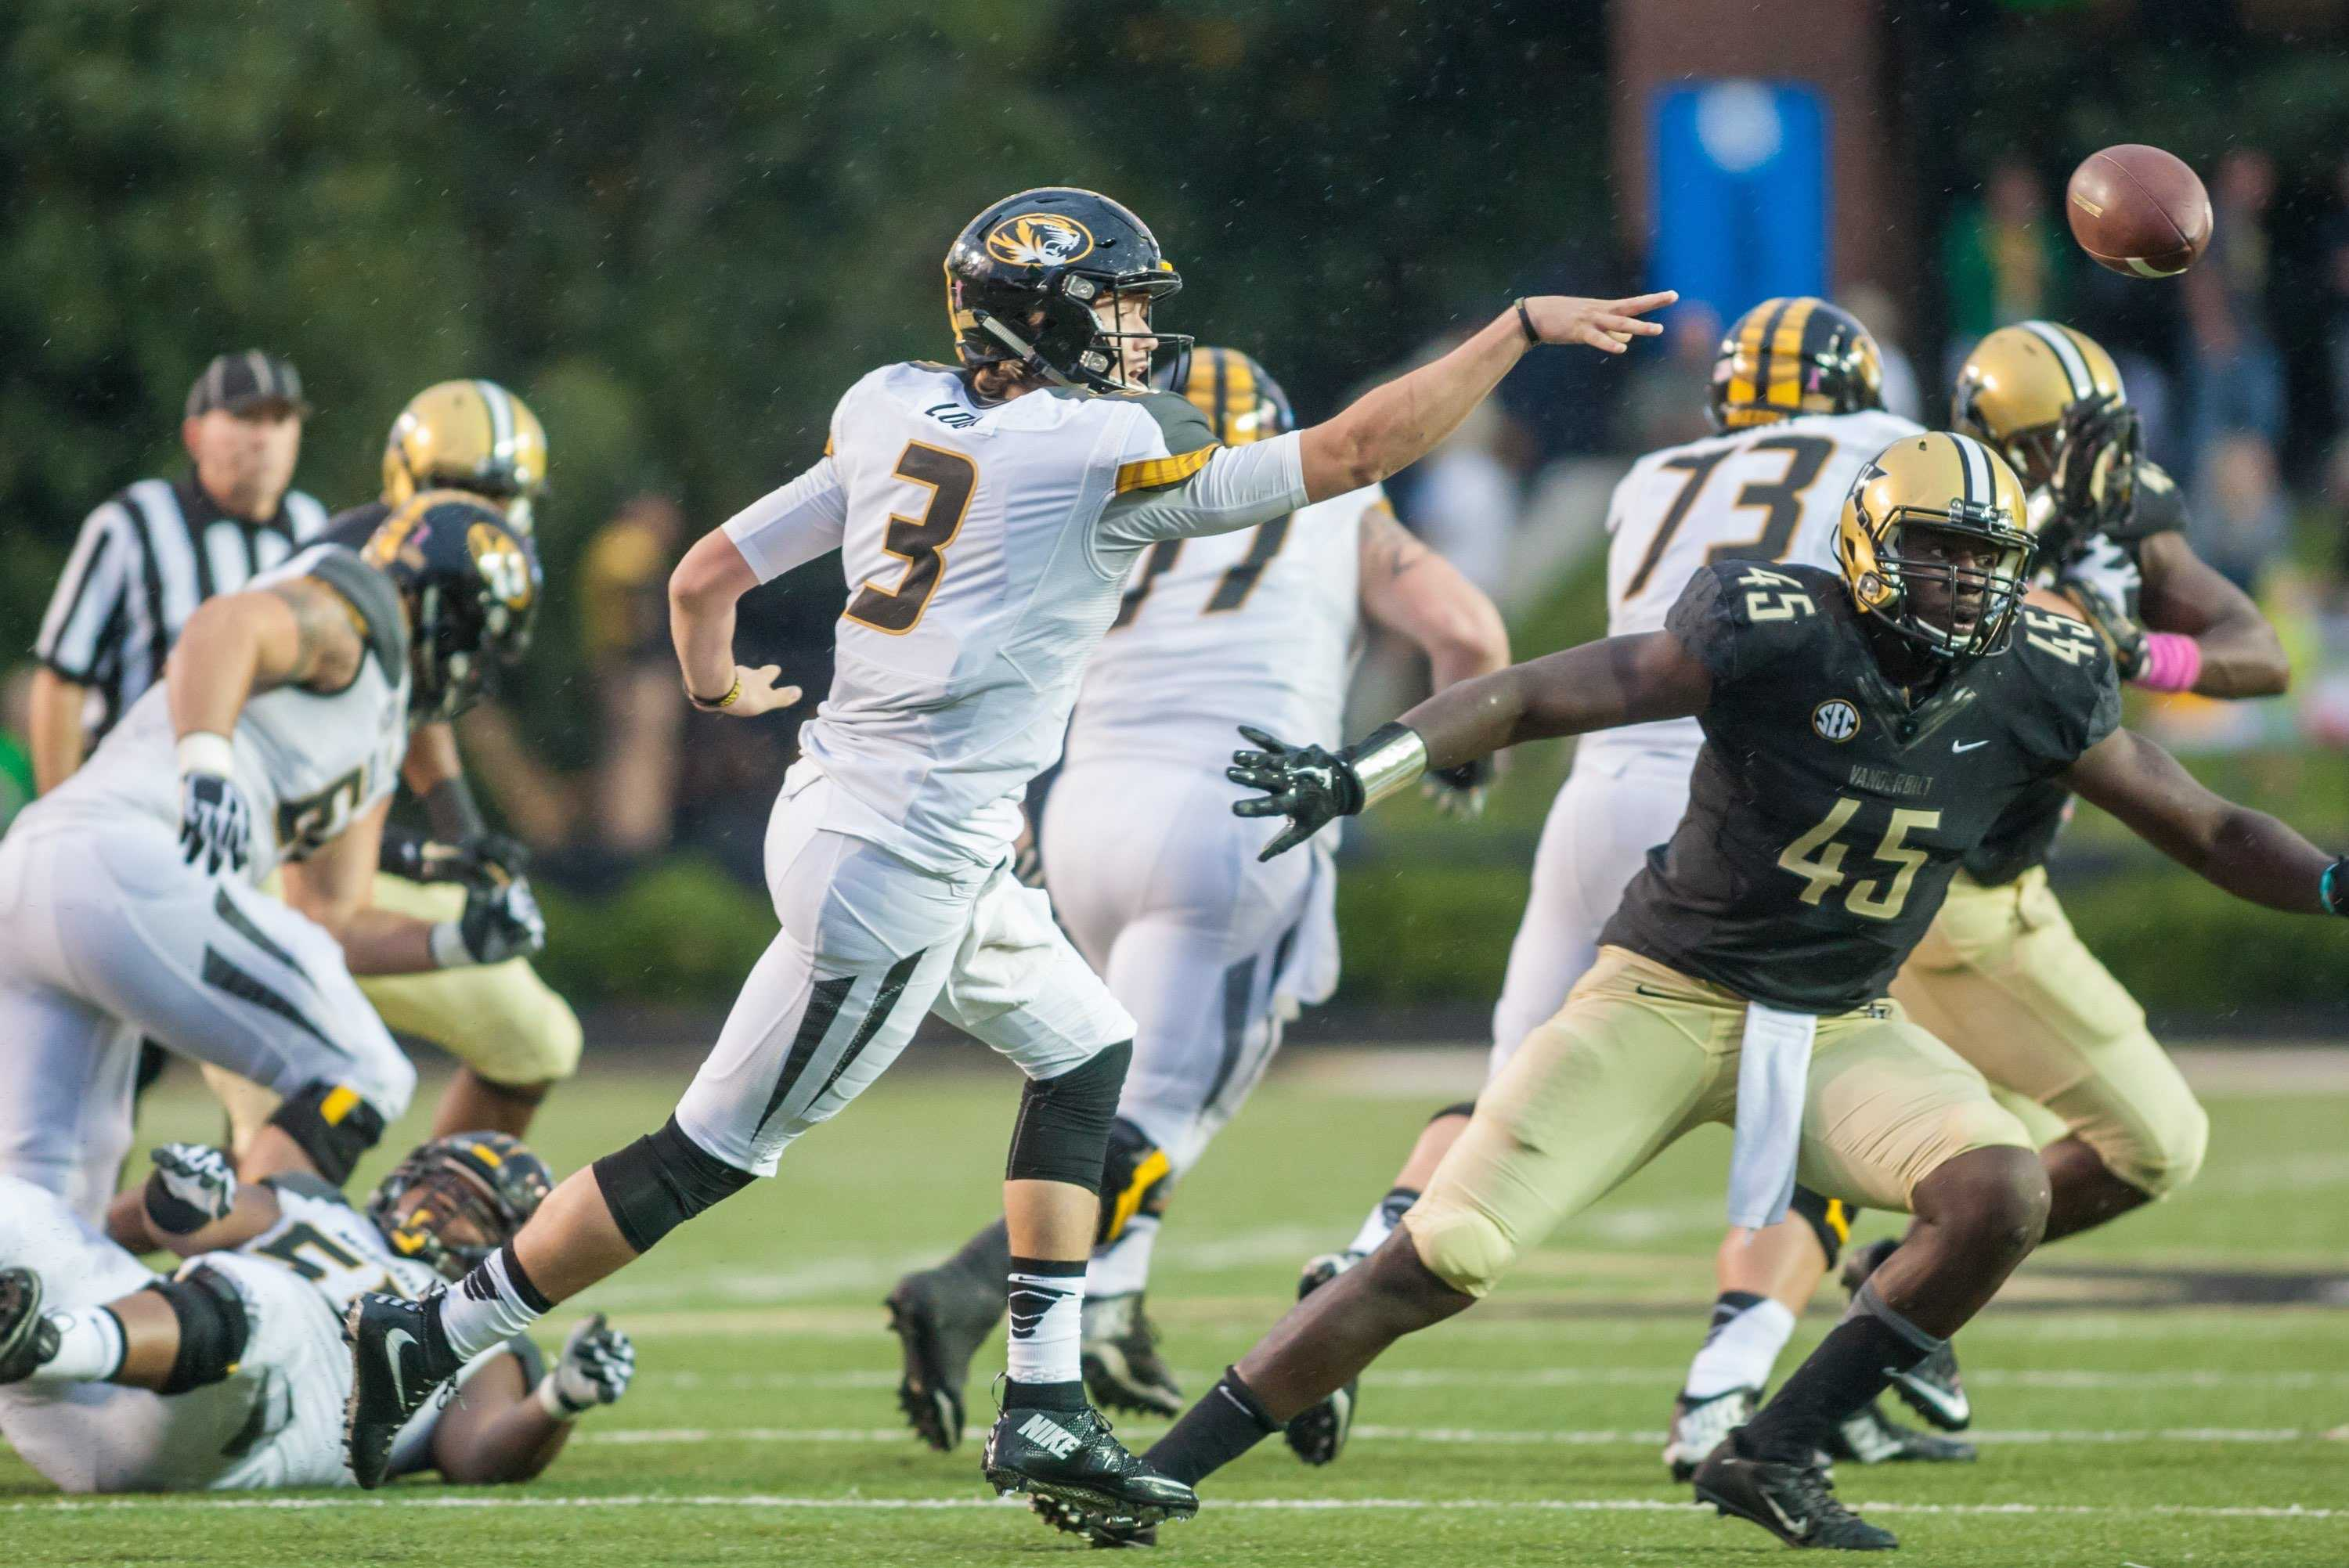 Drew Lock as Vanderbilt picked up its first SEC win under Coach Mason 10-3 at Vanderbilt Stadium October 24, 2015. Photo by Ziyi Liu.